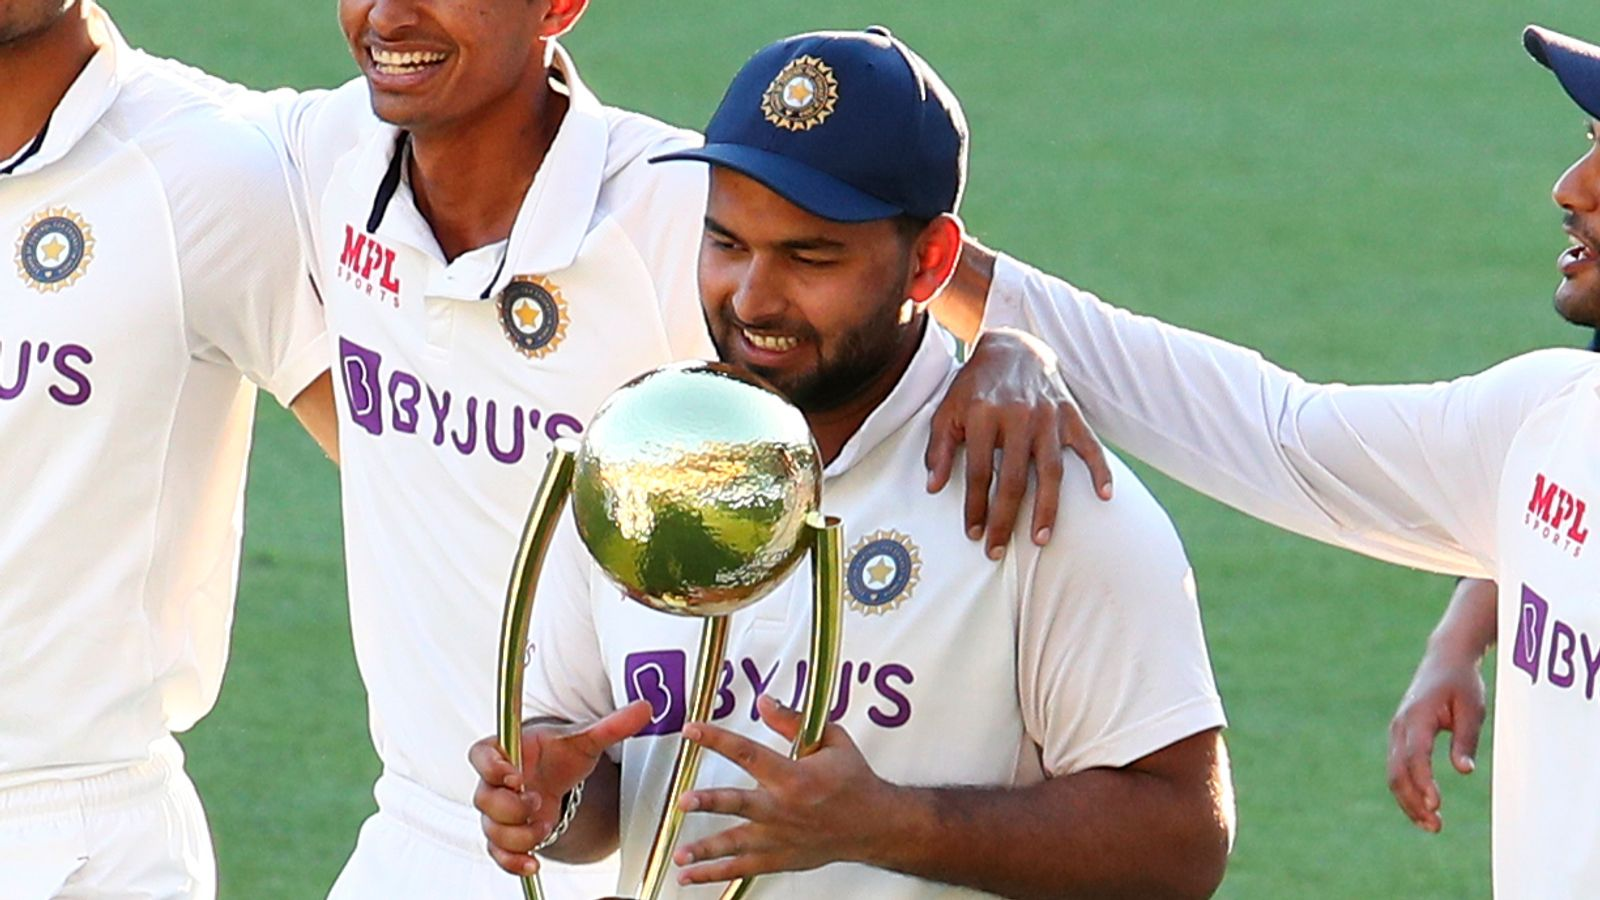 Rishabh Pant relishes 'one of the biggest moments' of his life after taking India to win over Australia